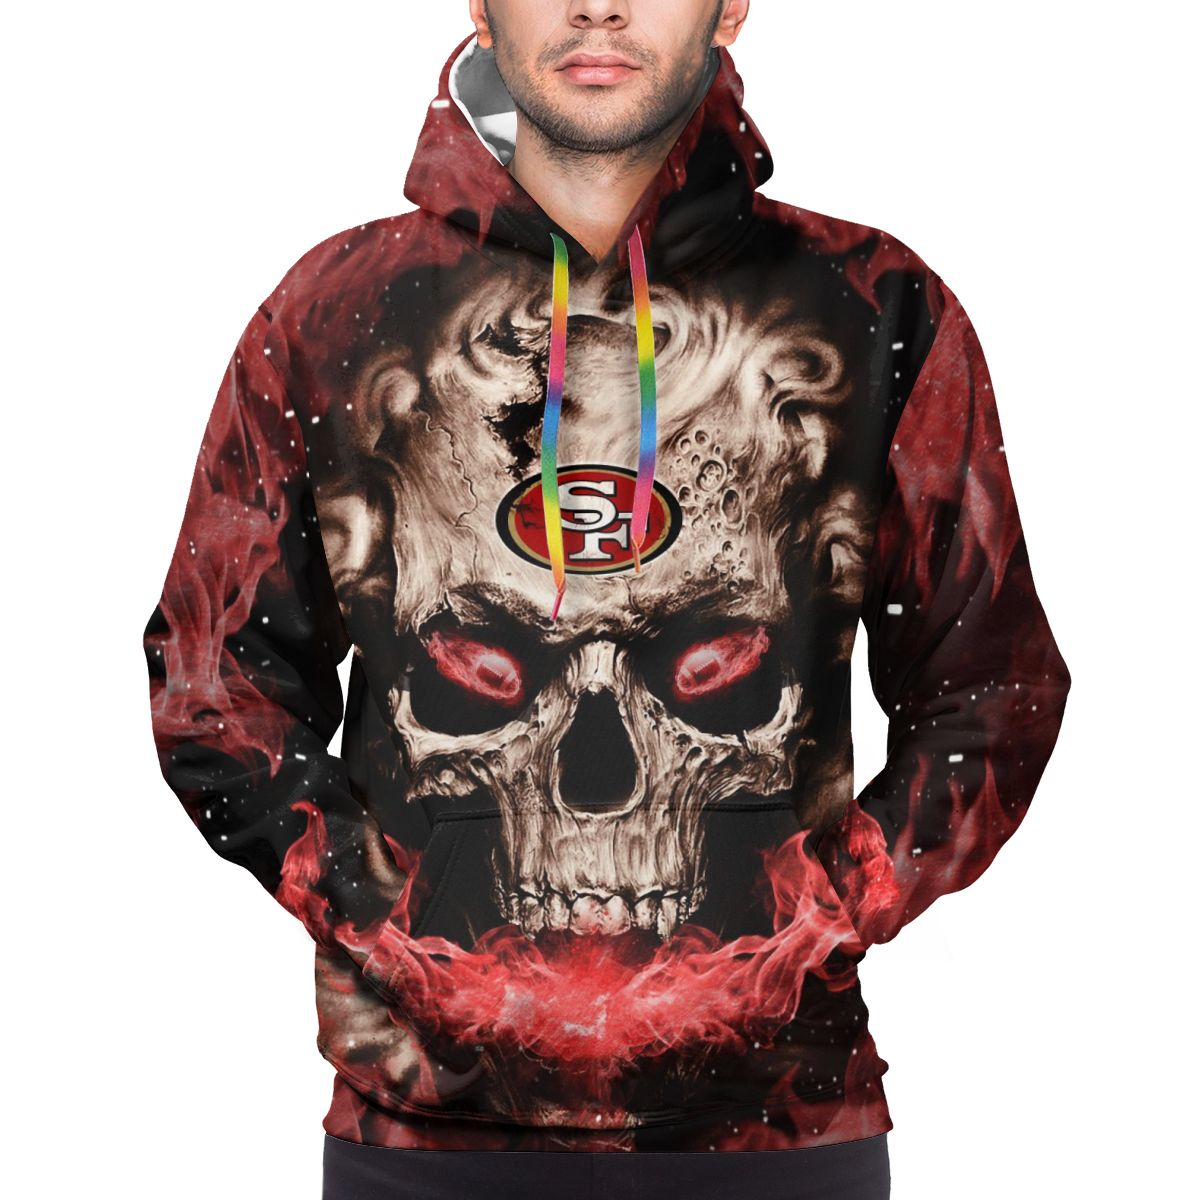 3D Skull 49ers Logo Print Hoodies For Men Pullover Sweatshirt